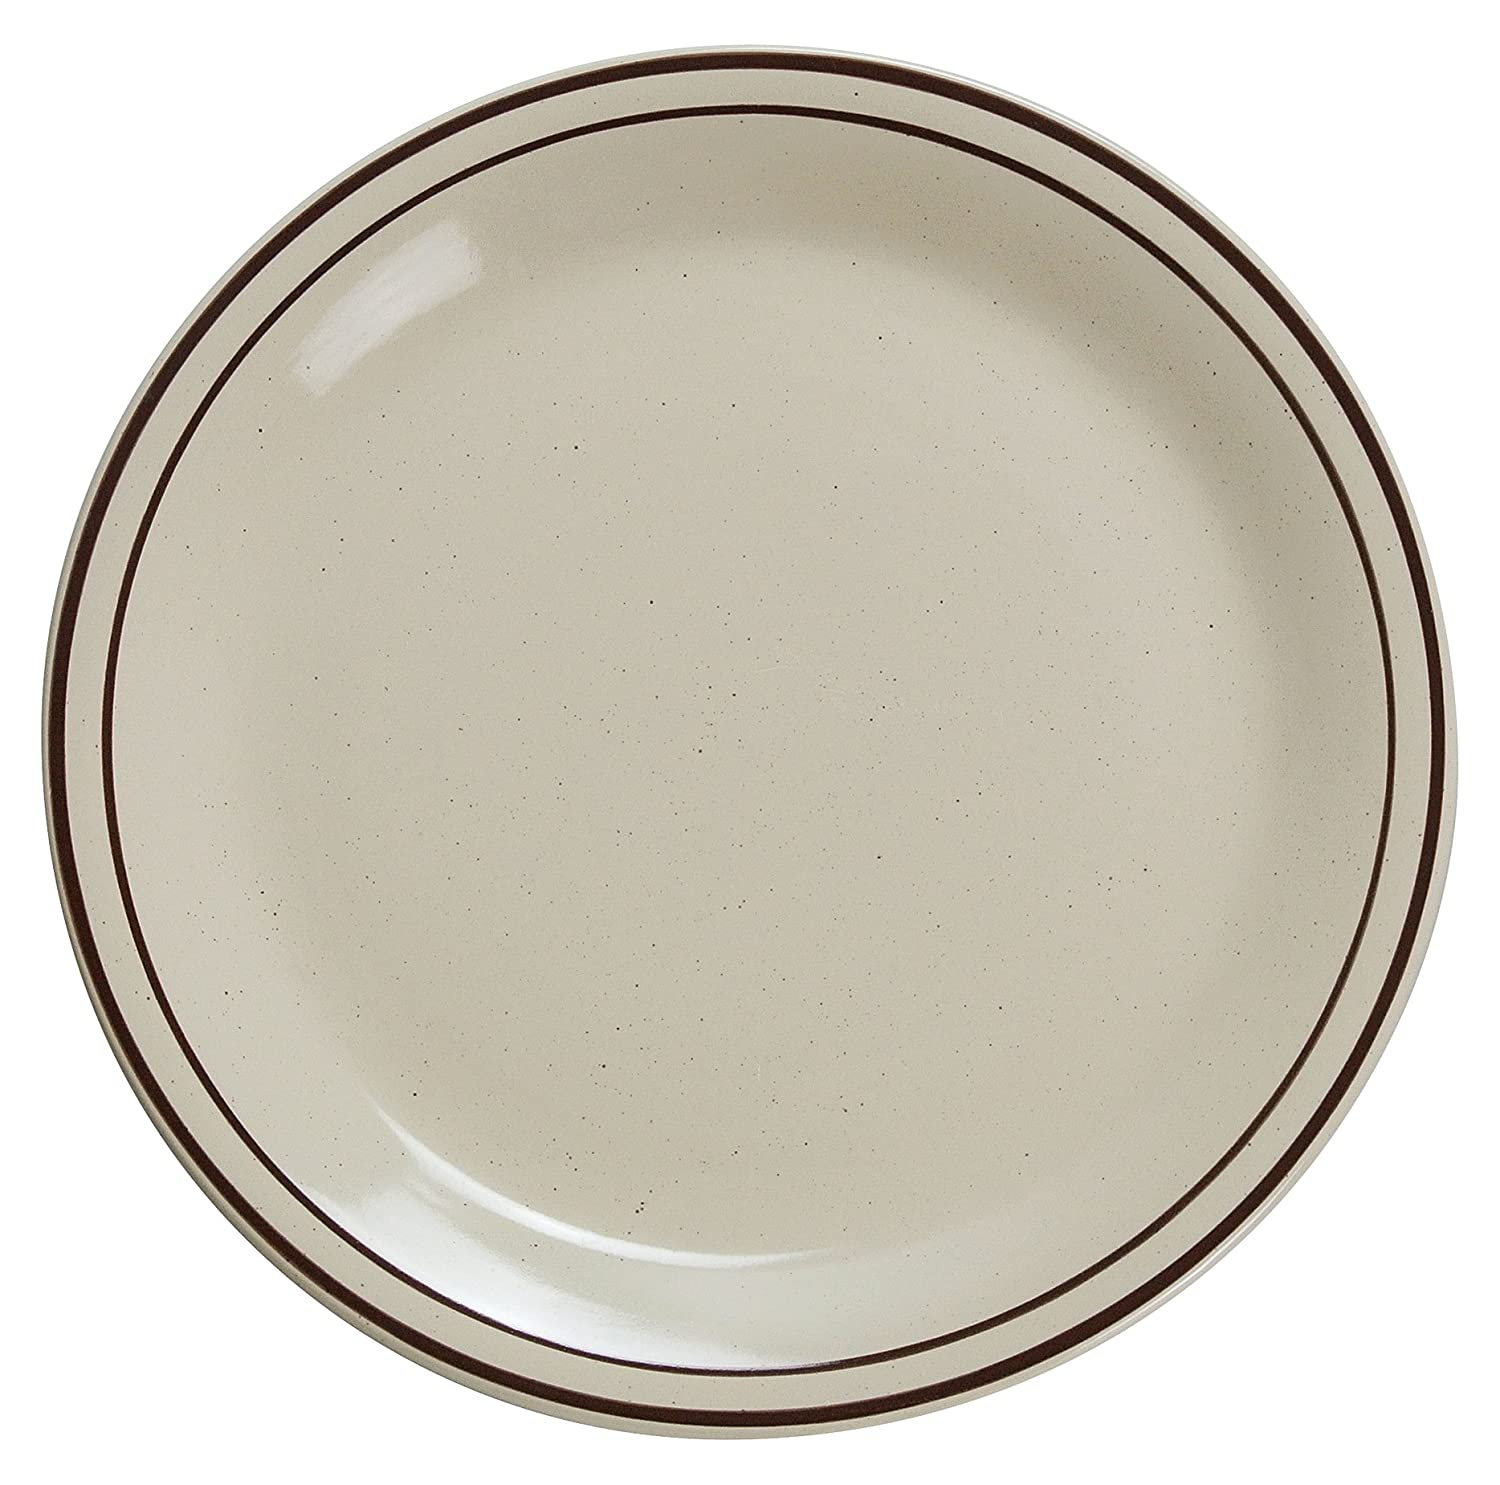 Yanco El Paso Mall BR-7 Brown Speckled Be super welcome Plate Diameter 7.25